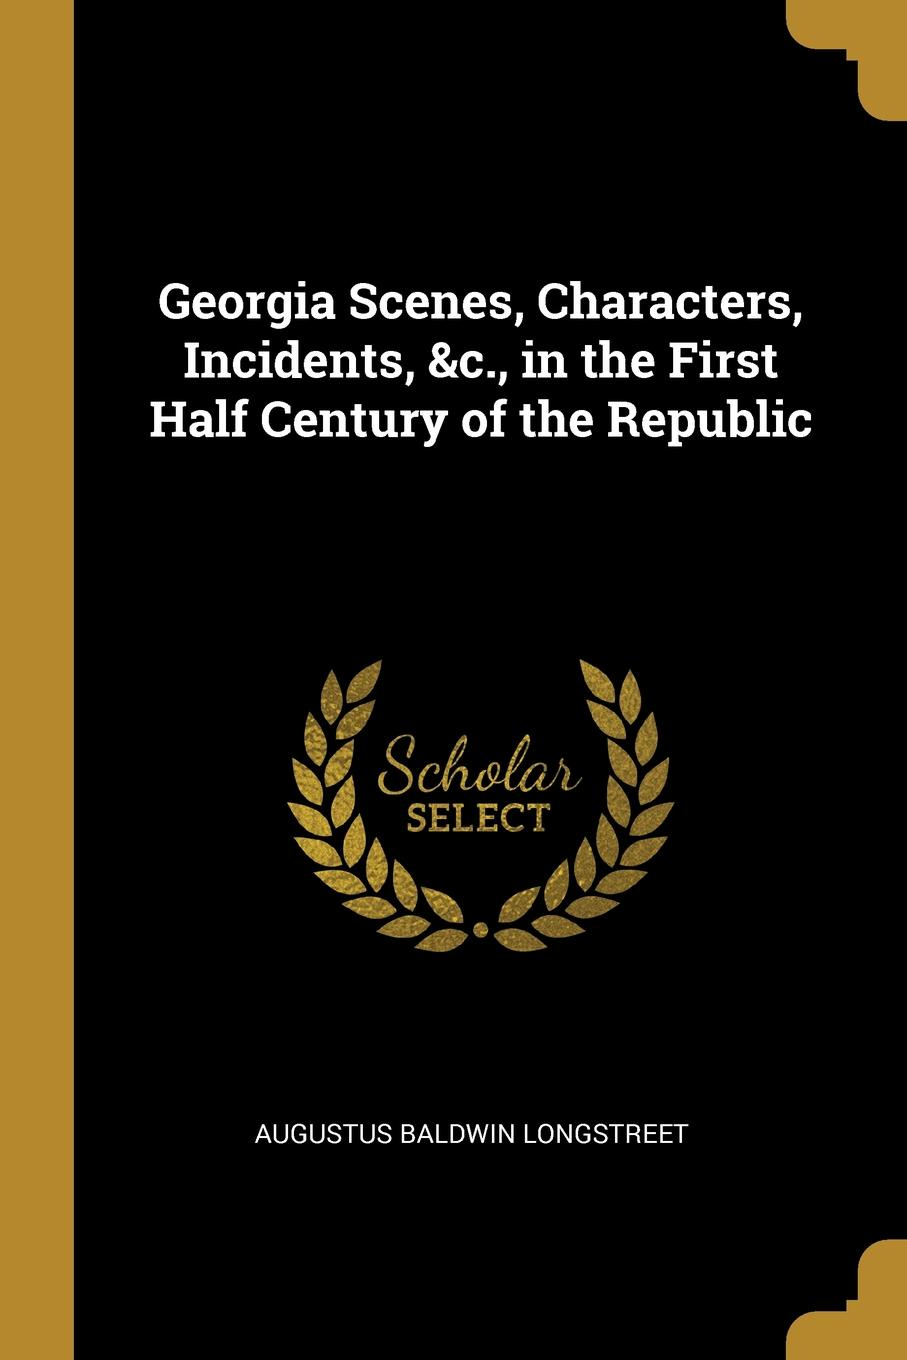 Augustus Baldwin Longstreet Georgia Scenes, Characters, Incidents, .c., in the First Half Century of the Republic